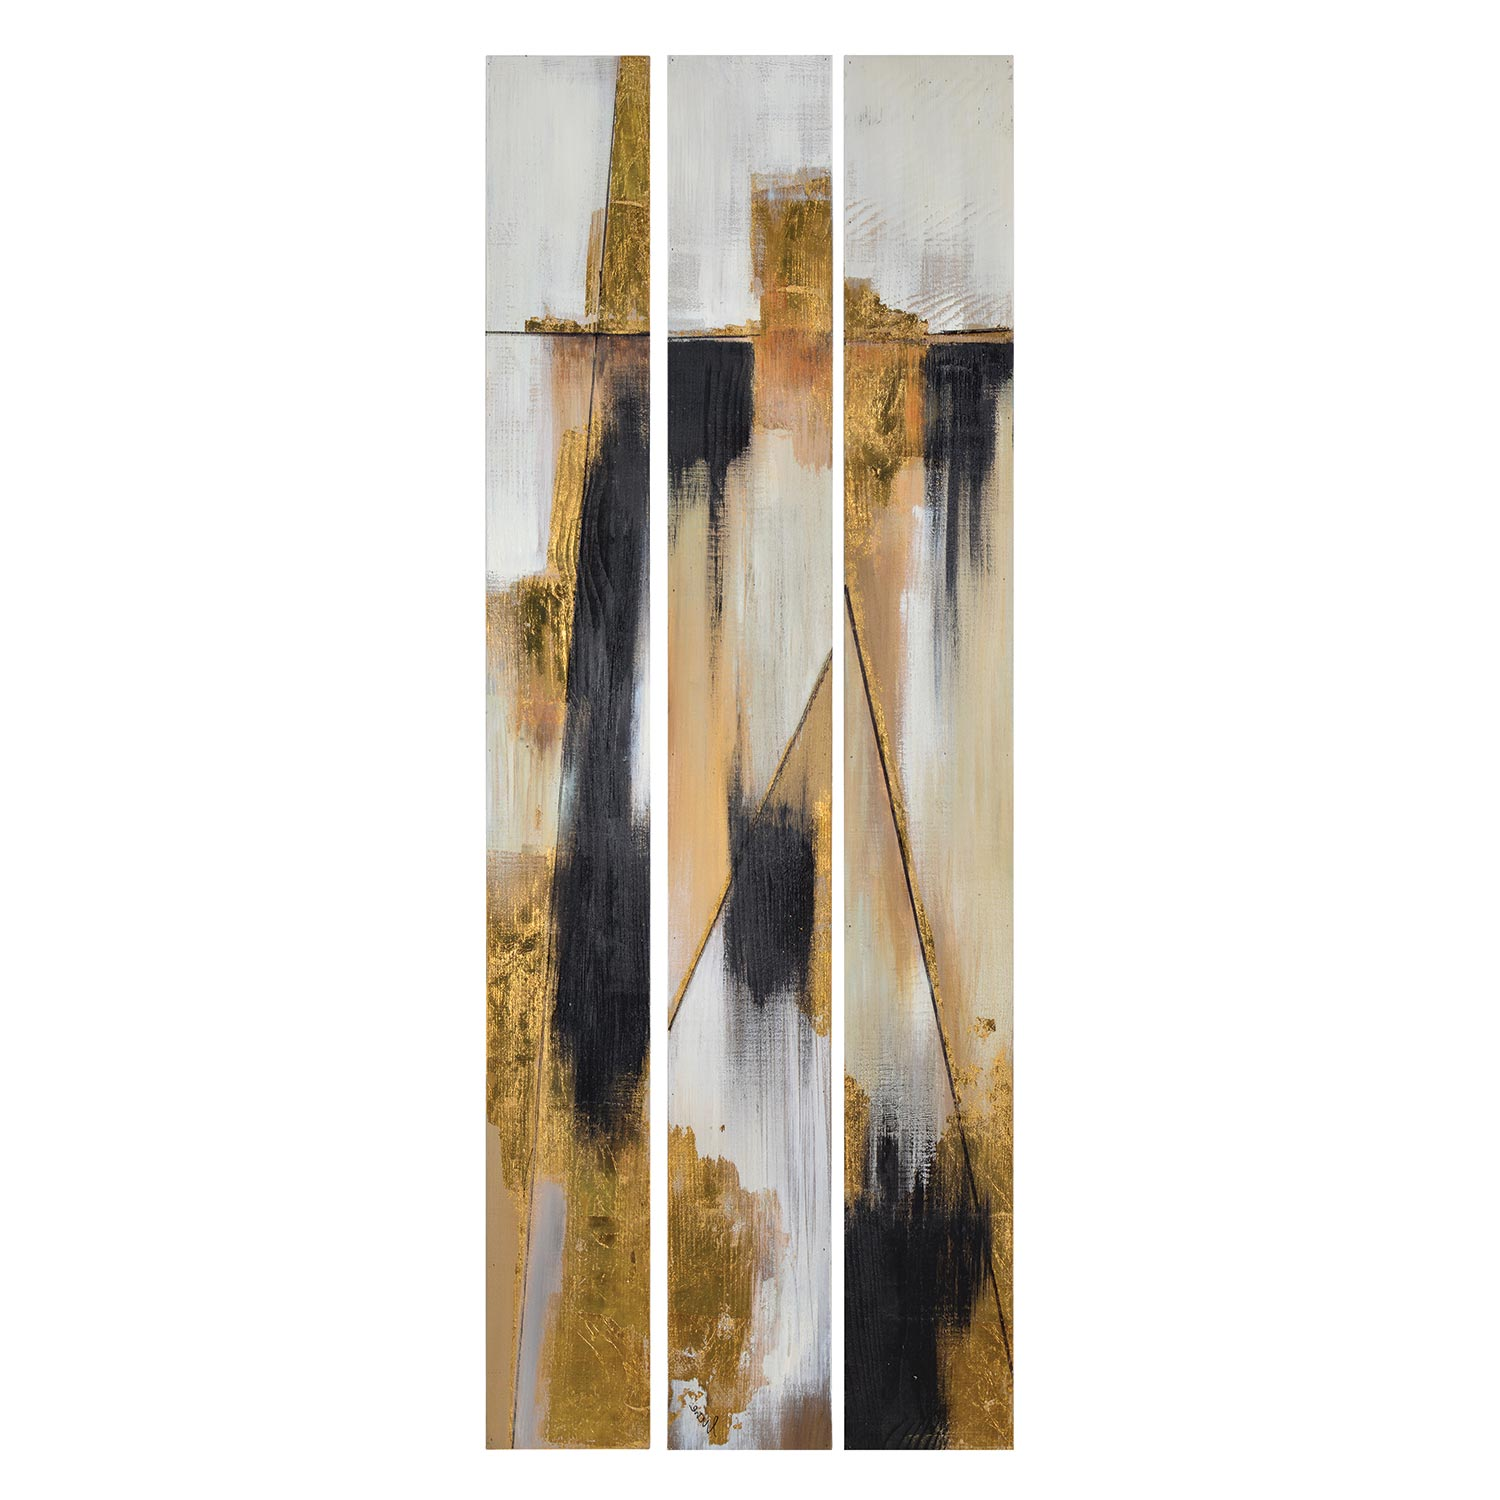 Ren-Wil Twist Wall Decor Painting - Multicolor